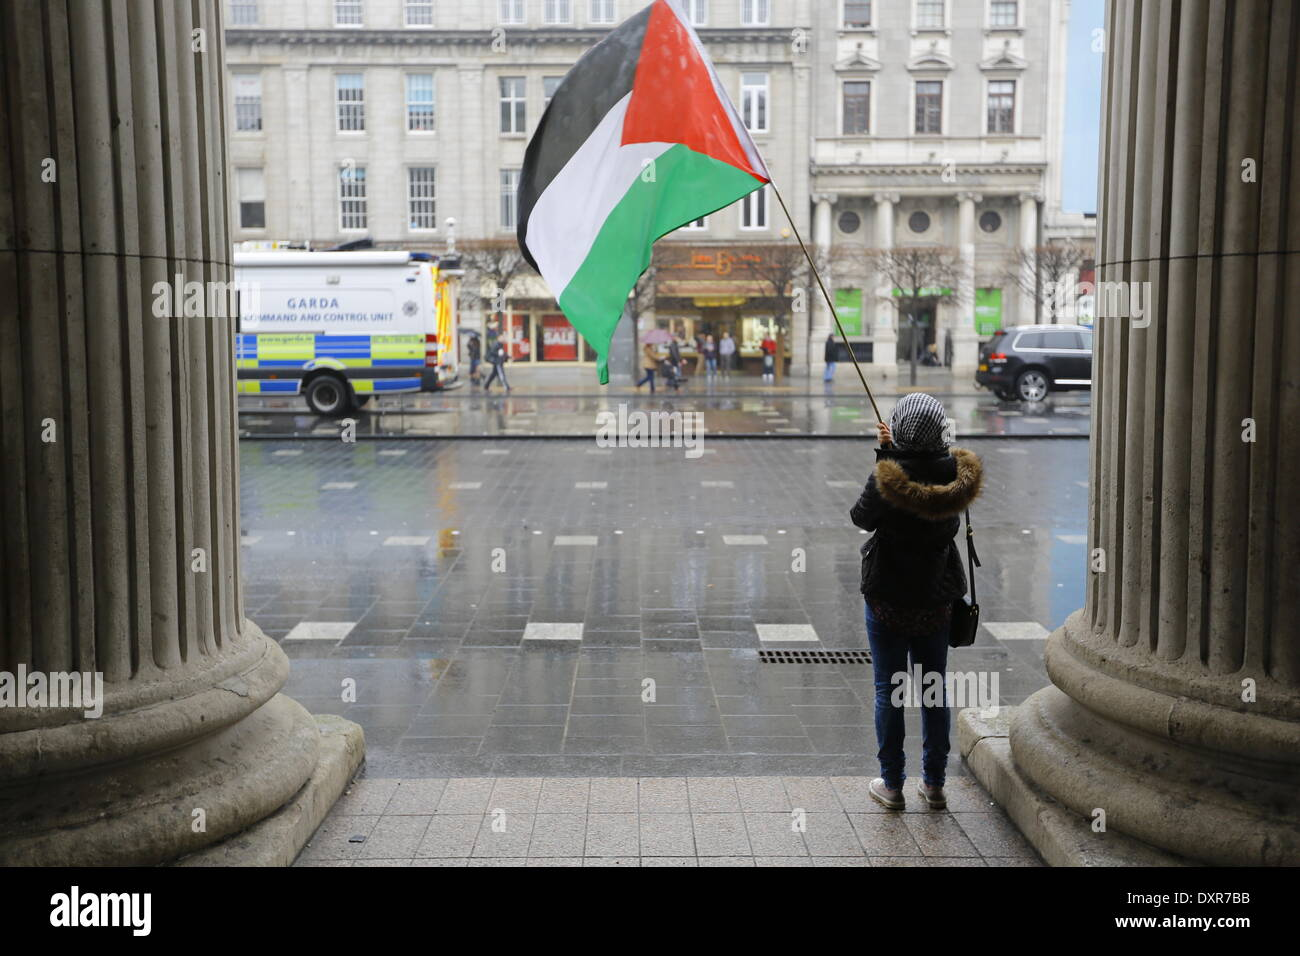 Dublin, Ireland. 29th March 2014. A protester waves an Palestinian flag. The Ireland Palestine Solidarity Campaign (IPSC) protested in Dublin's O'Connell Street on the 38th anniversary of the 1976 land day protest against discrimination of Palestinians by Israel and the expansion of Israeli settlements in Palestinian territory. Credit:  Michael Debets/Alamy Live News - Stock Image